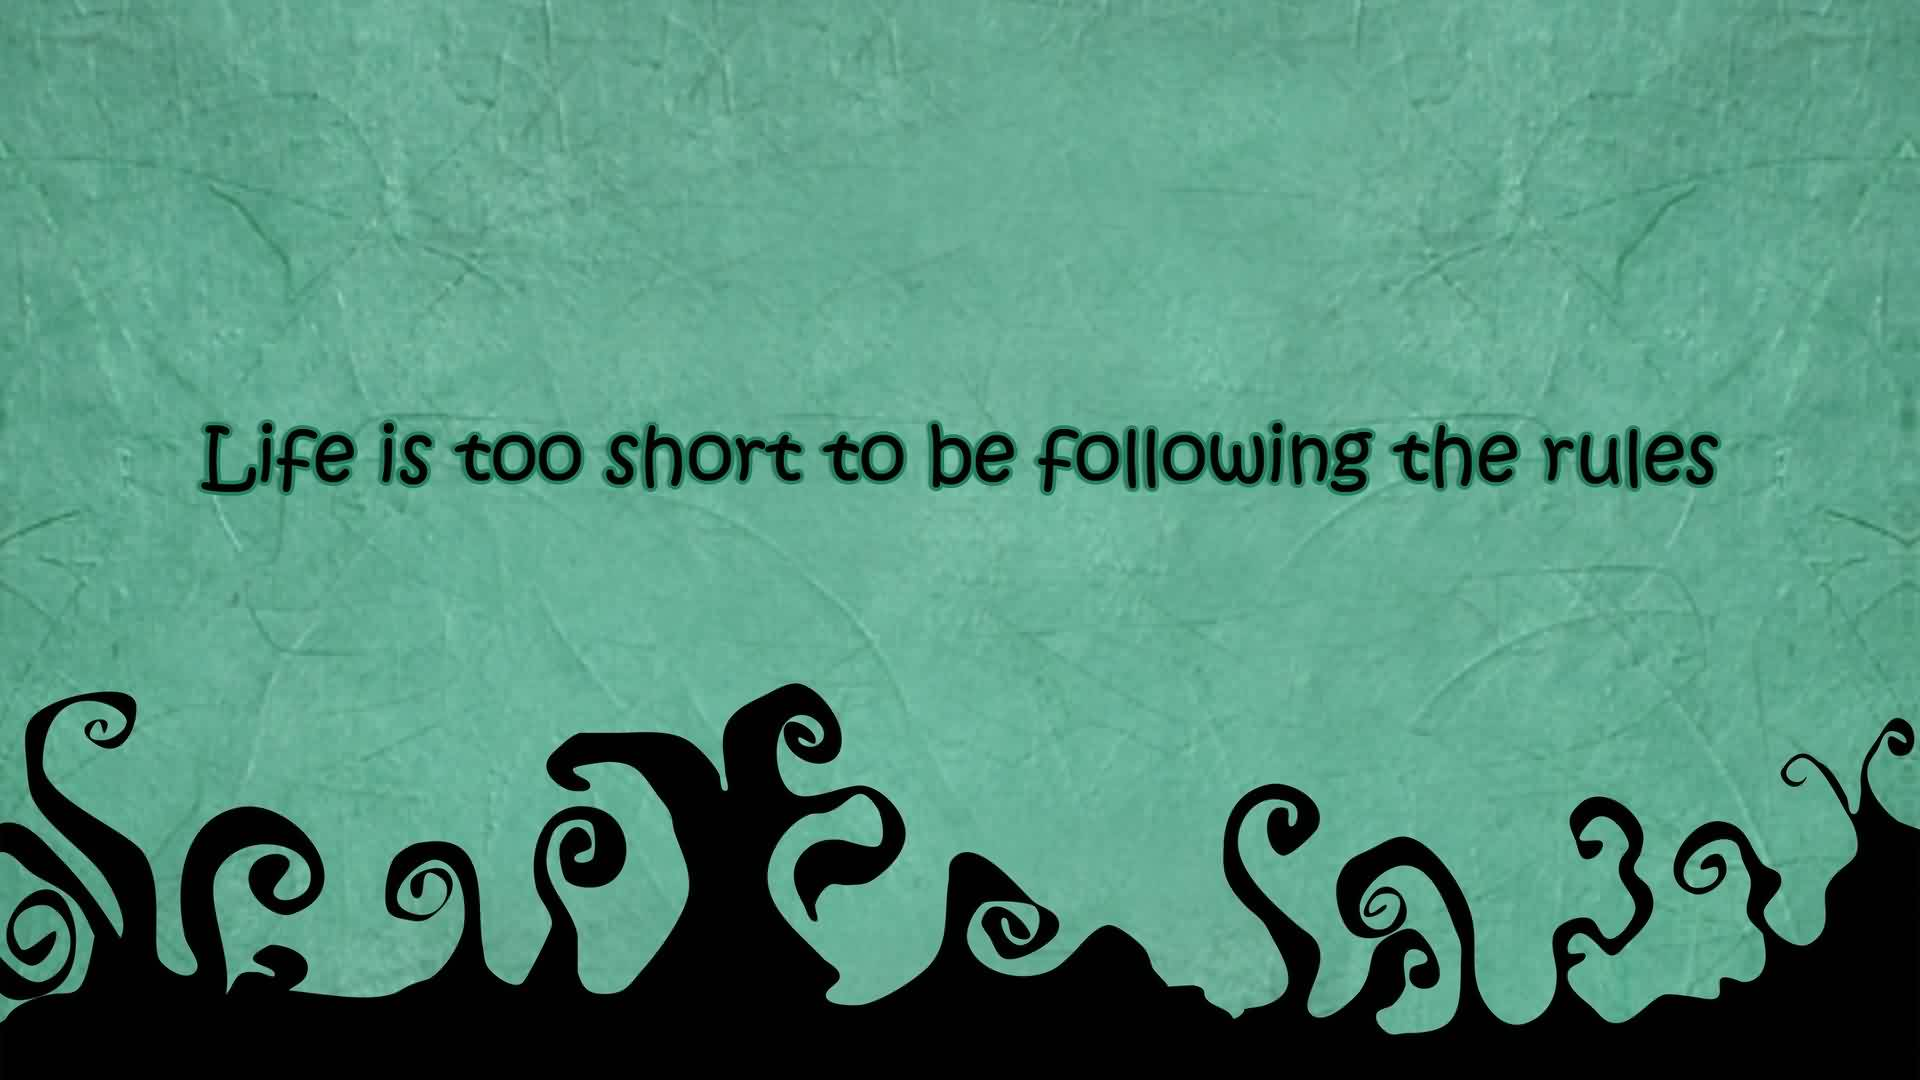 New Life Quotes Images-Life is too short to follow rules